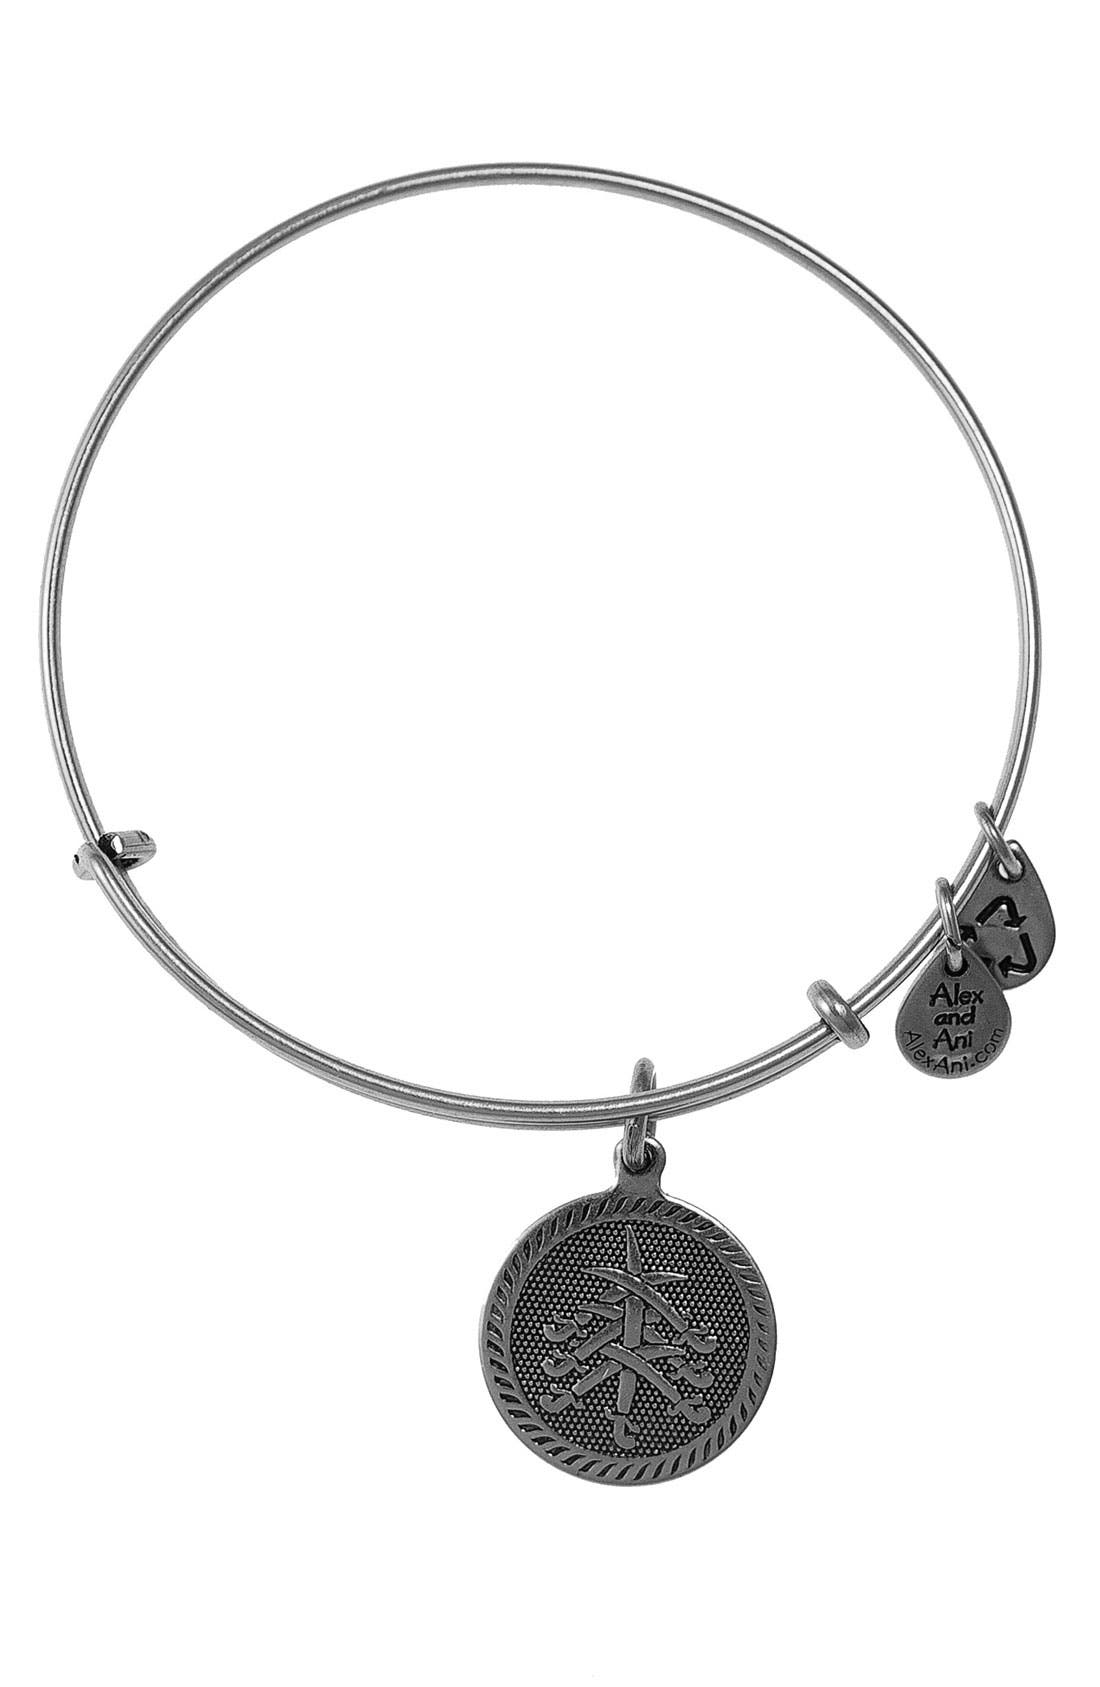 Alternate Image 1 Selected - Alex and Ani 'Seven Swords' Wire Bangle